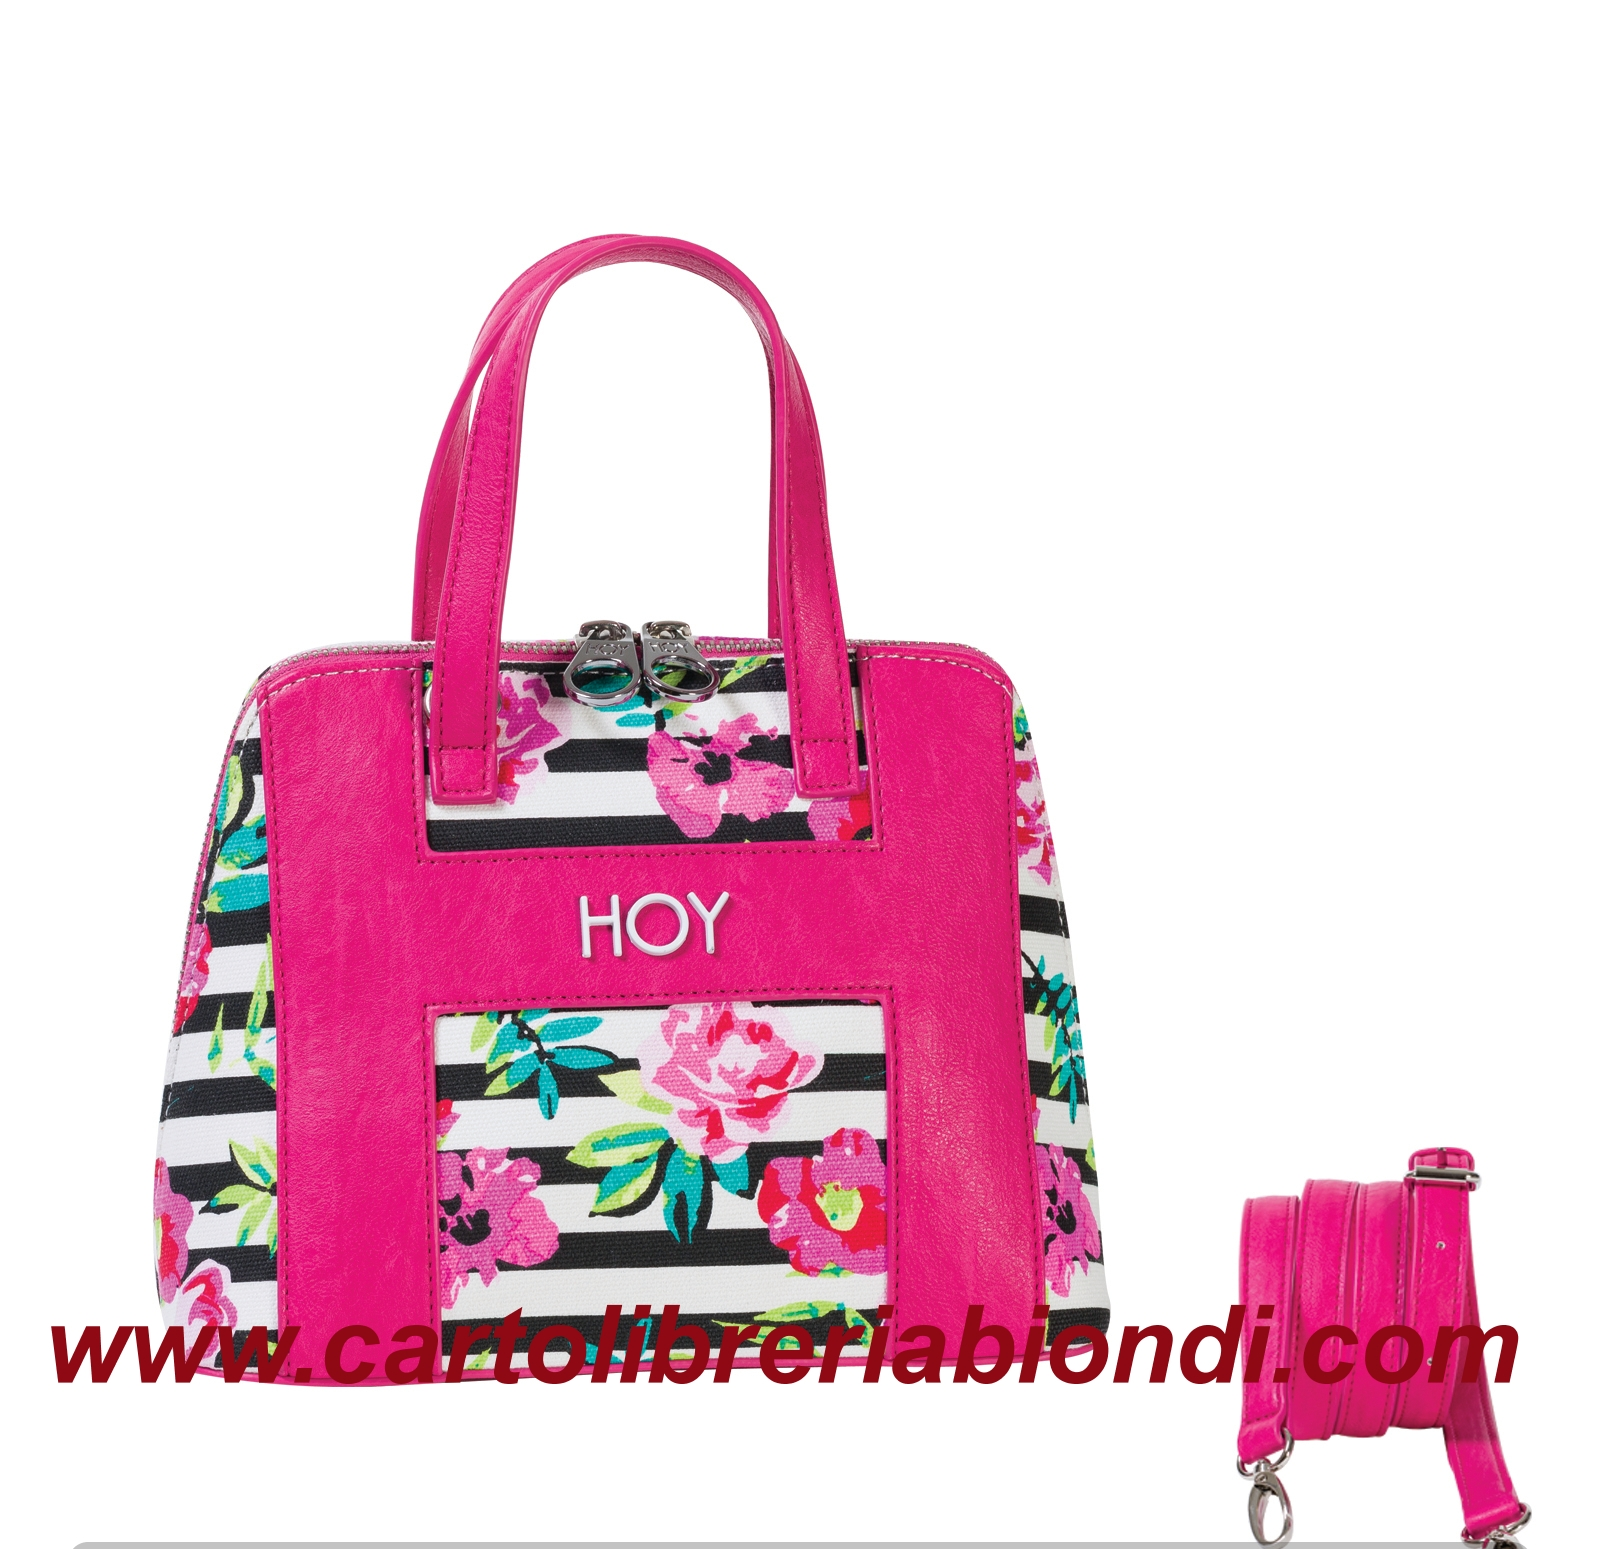 Hoy Honolulu Bag